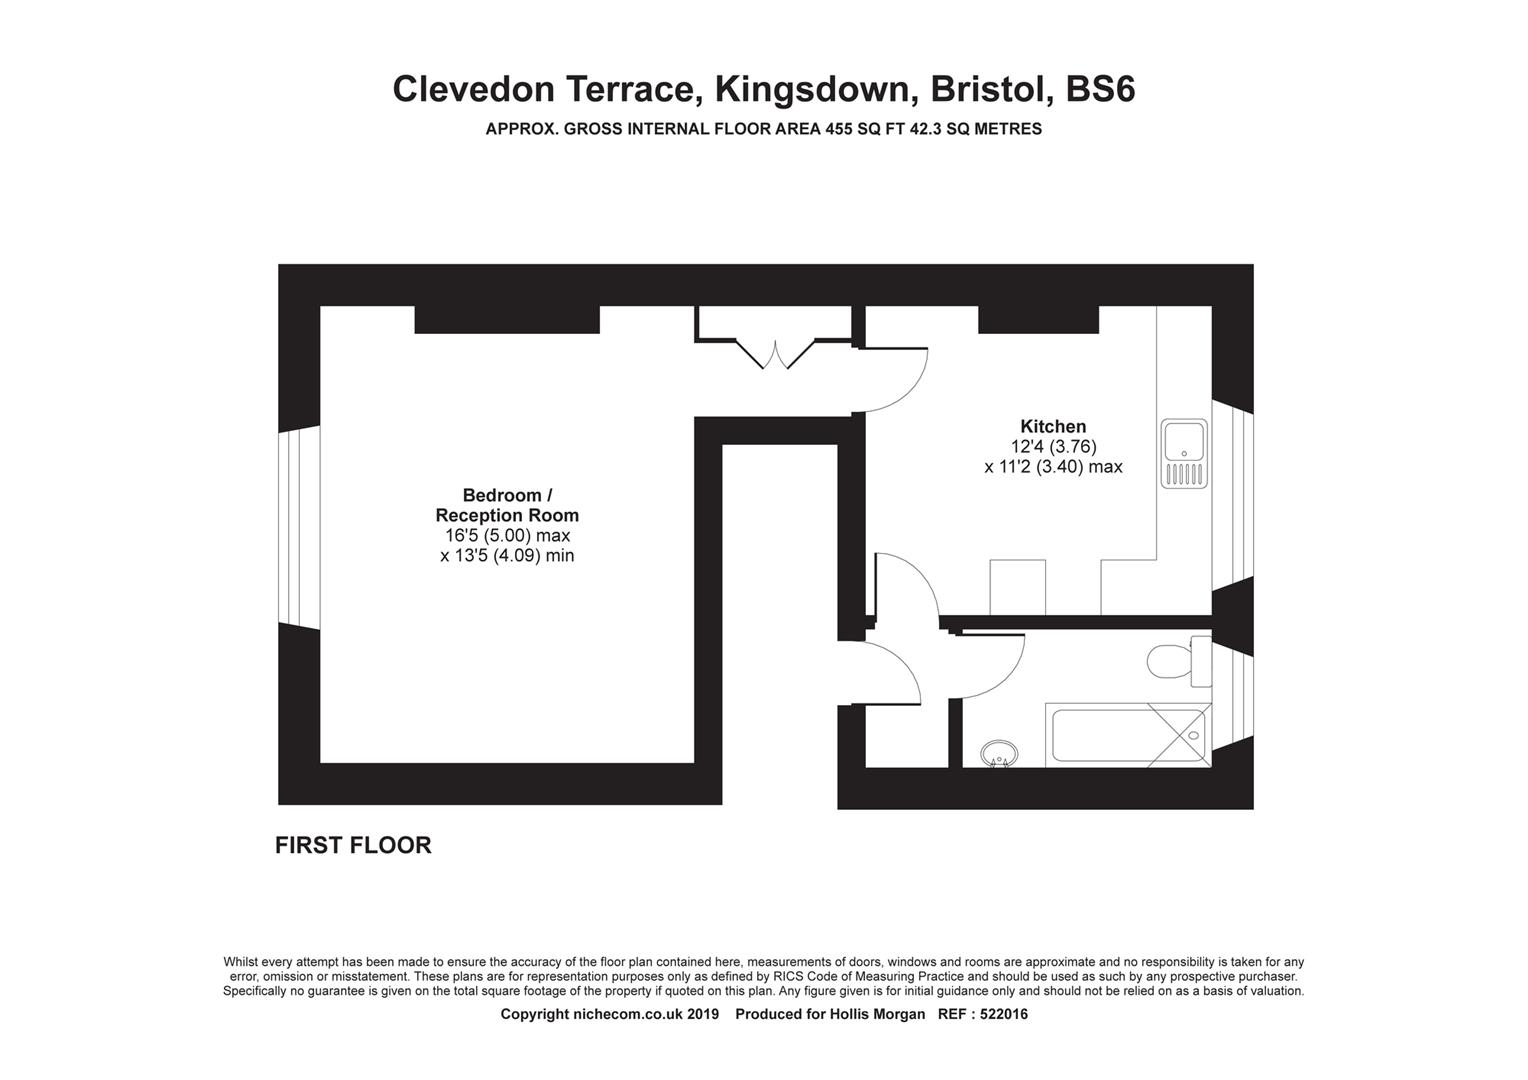 Floorplans For FLAT FOR UPDATING - KINGSDOWN